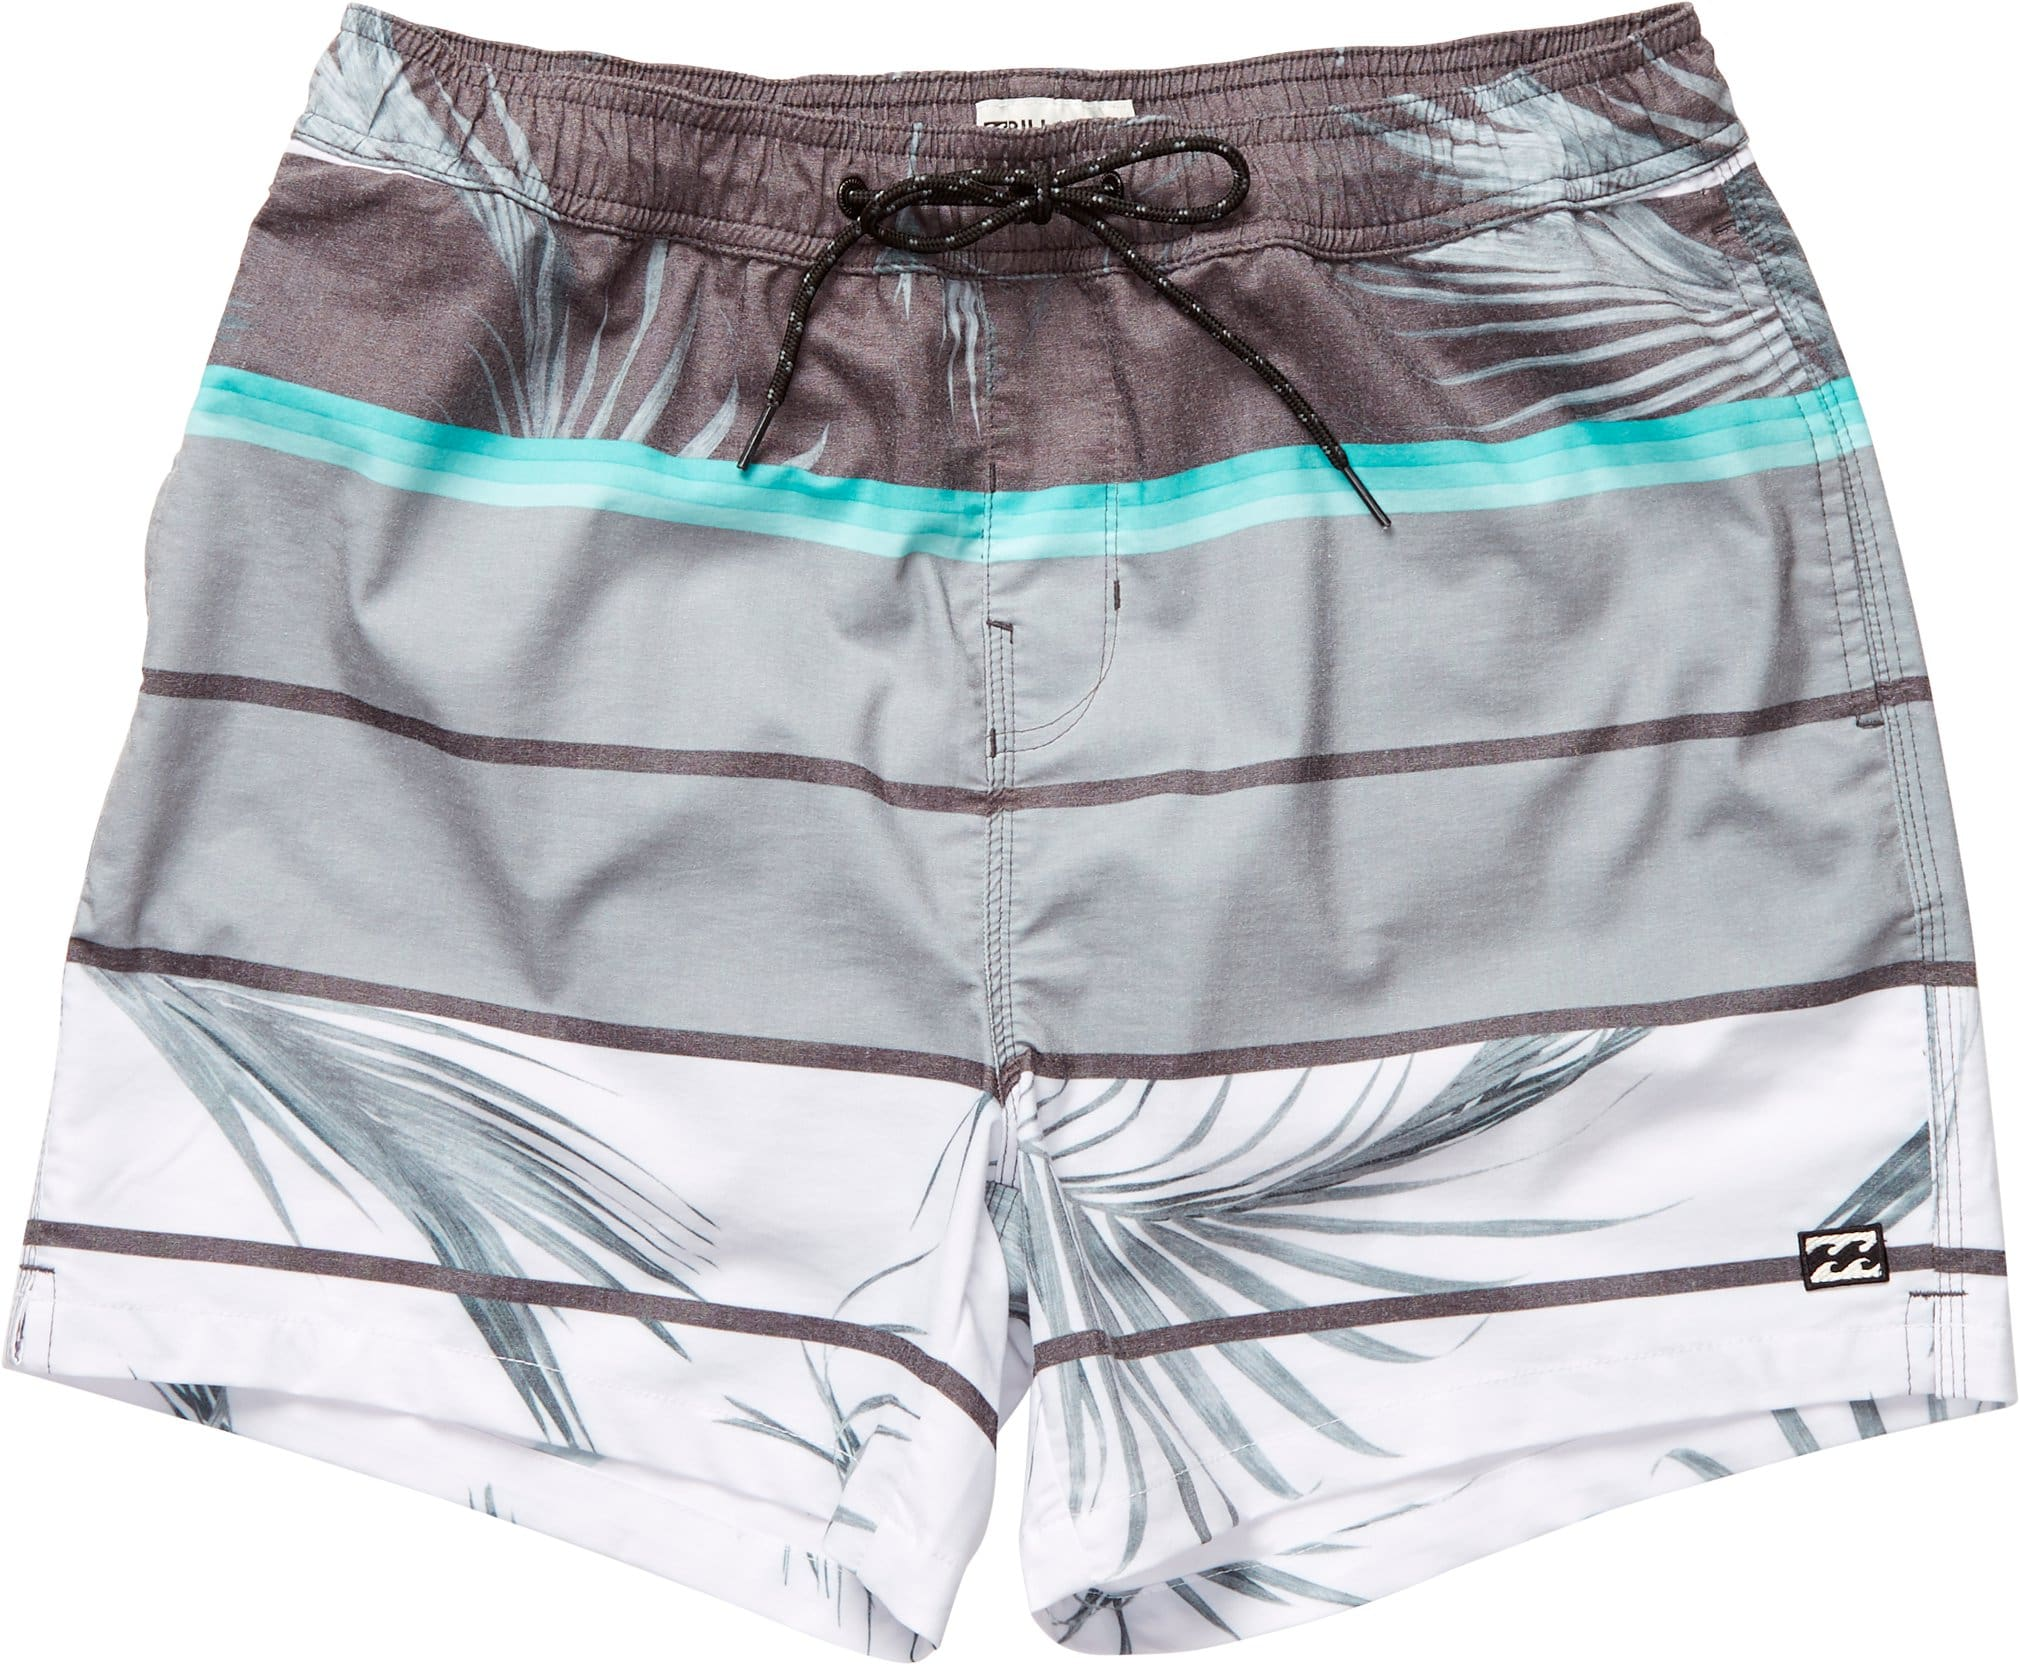 billabong spinner layback 16 herren badeshorts migros. Black Bedroom Furniture Sets. Home Design Ideas